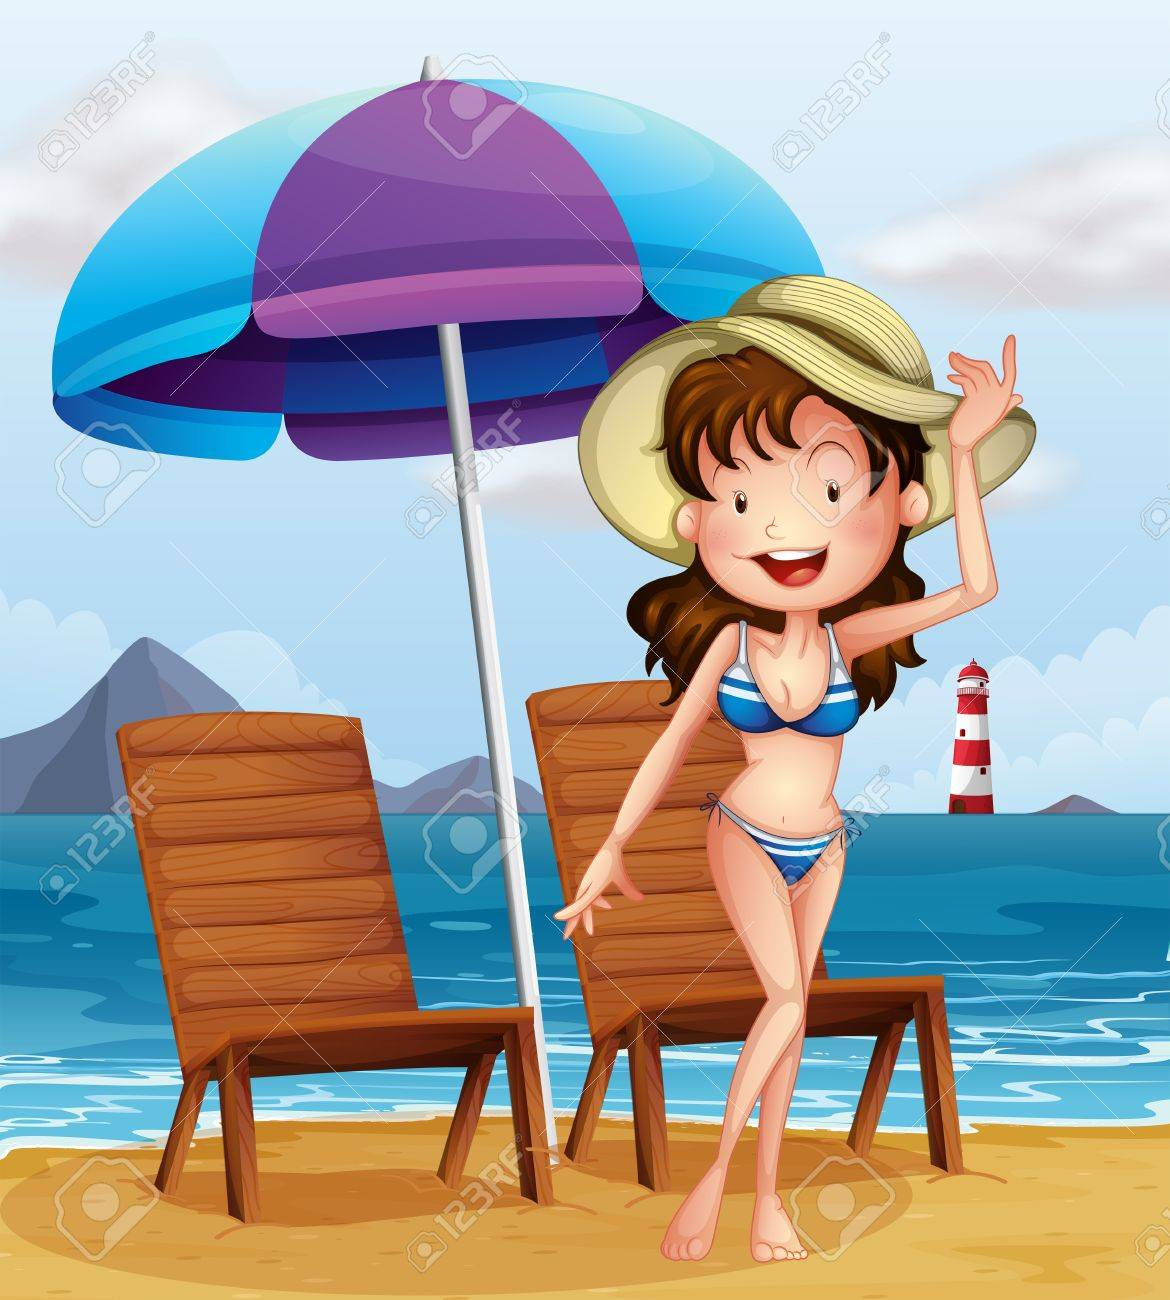 Illustration of a woman wearing a stripe swimsuit at the beach Stock Vector - 18549692